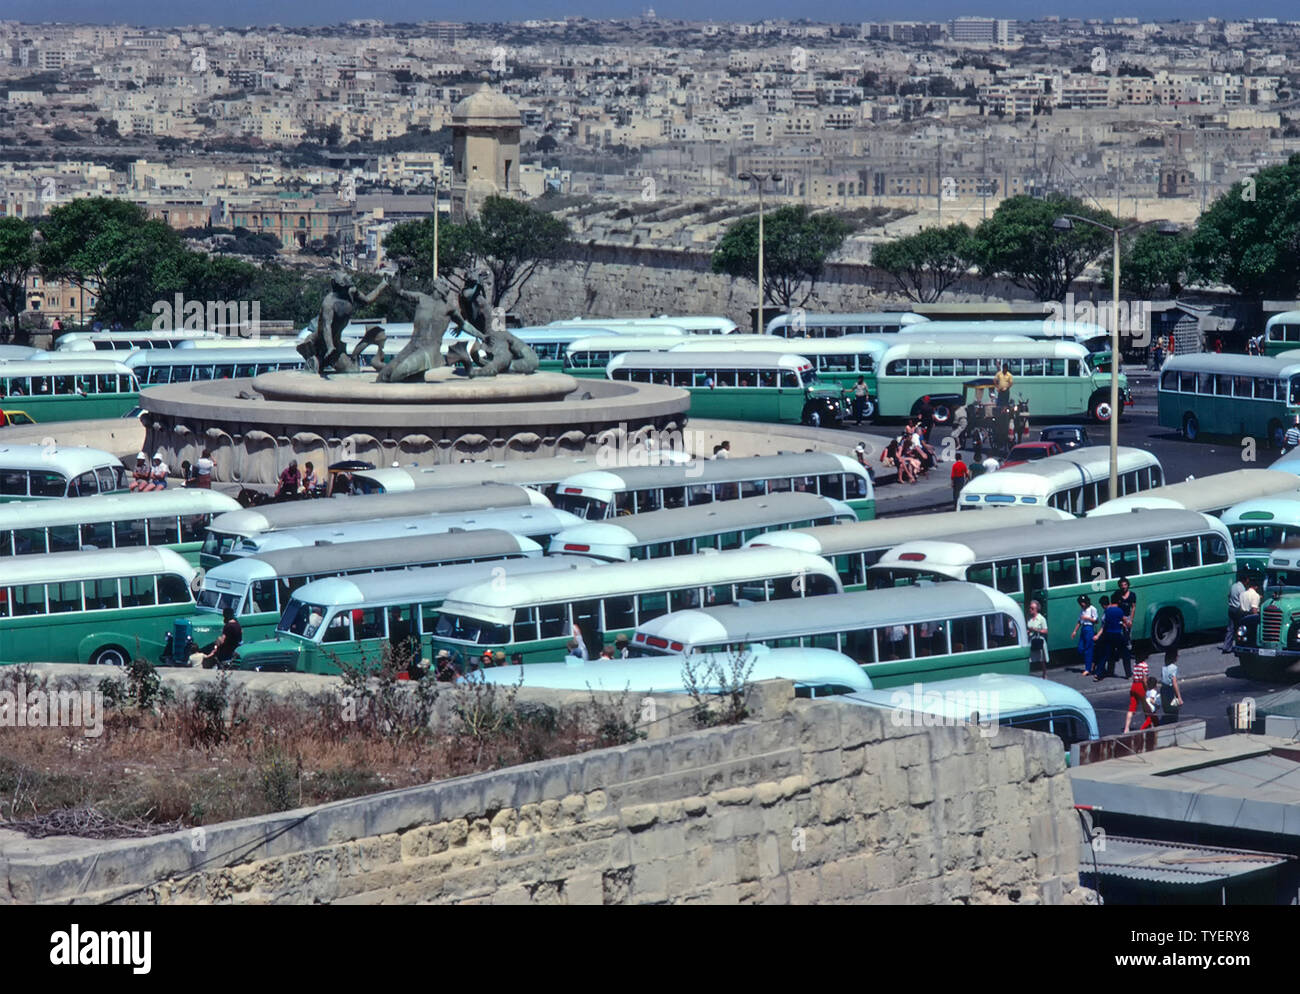 Historical archive image main bus terminus in Valletta buses painted green 1975 - 1995 parked around much altered three bronze Tritons statues Malta Stock Photo